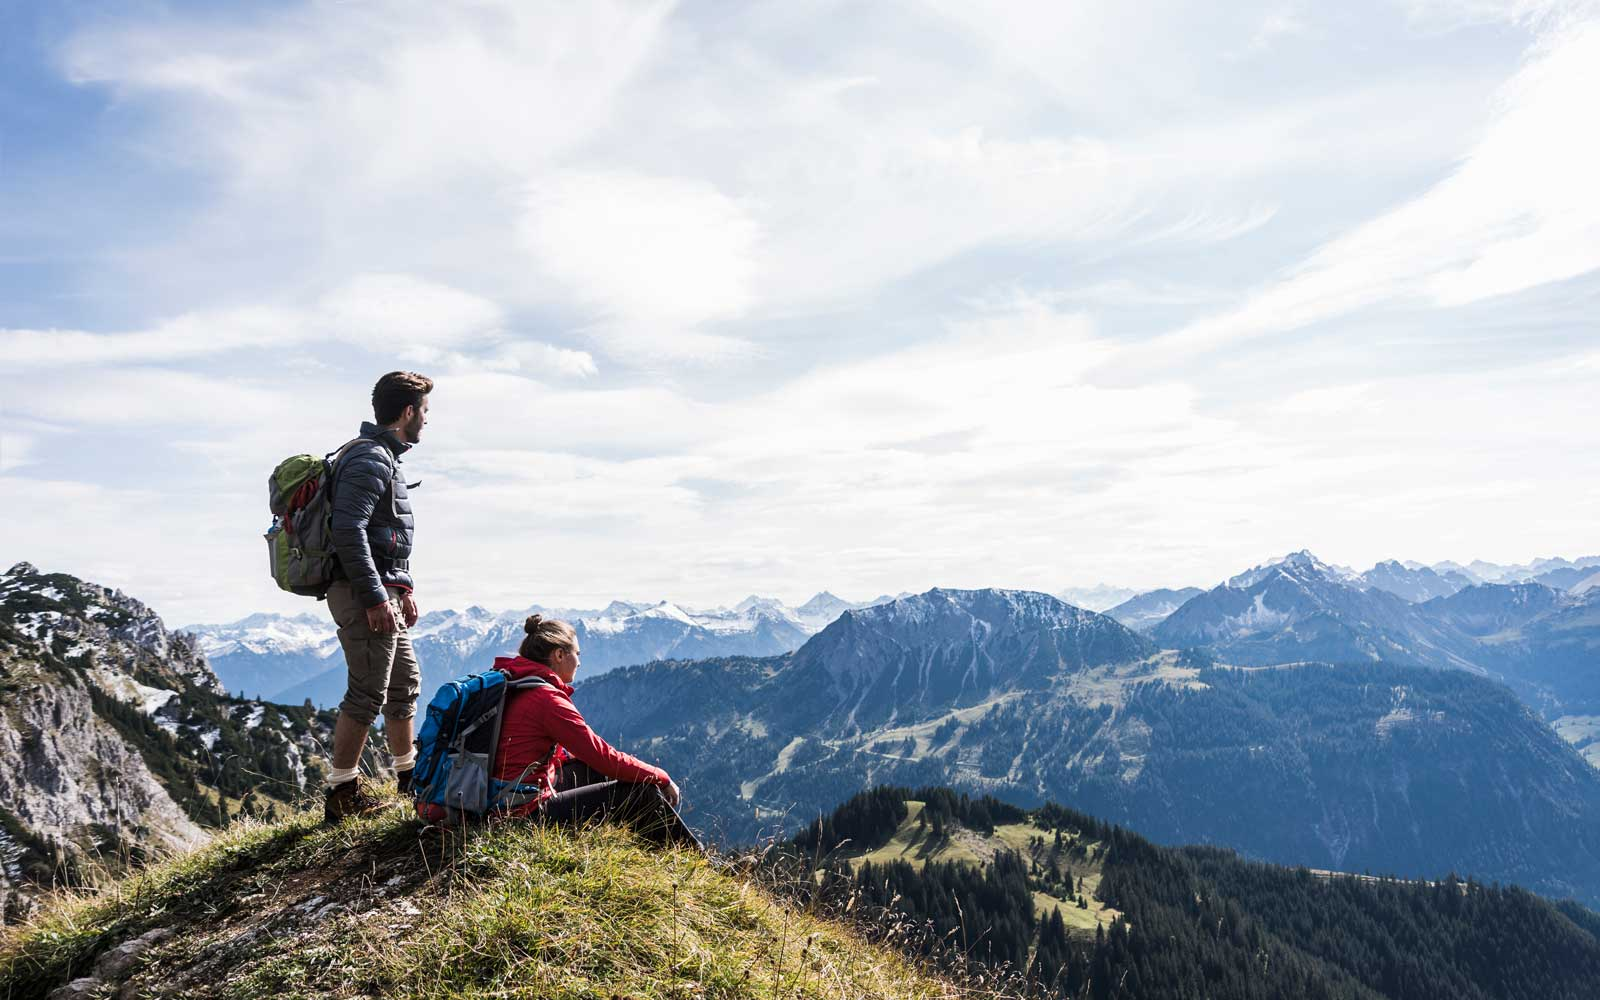 You Only Need 5 Minutes in Nature to Improve Your Mood, Study Finds